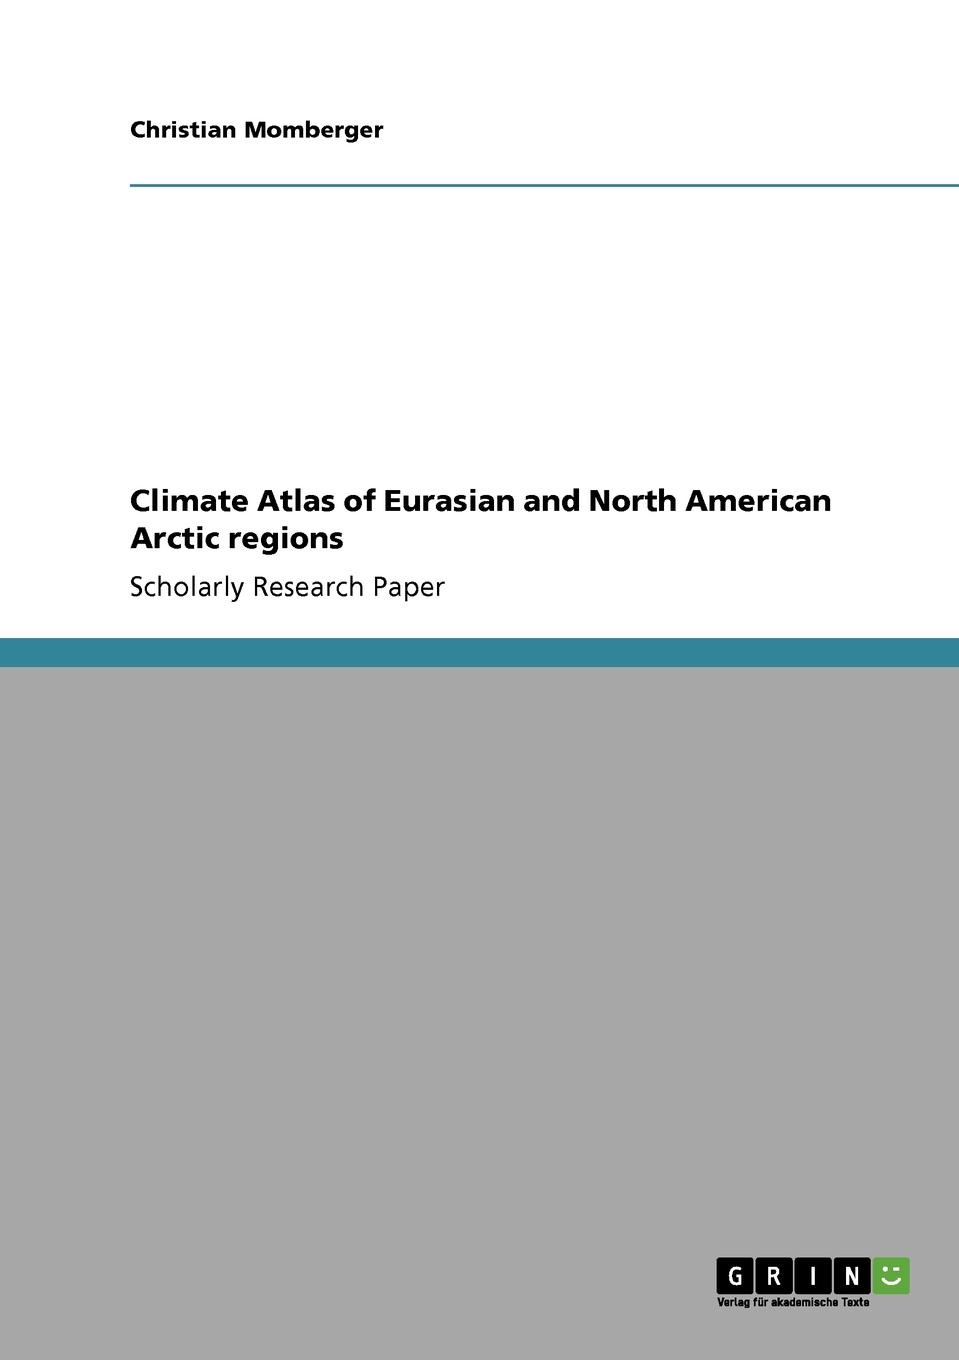 Christian Momberger Climate Atlas of Eurasian and North American Arctic regions недорого